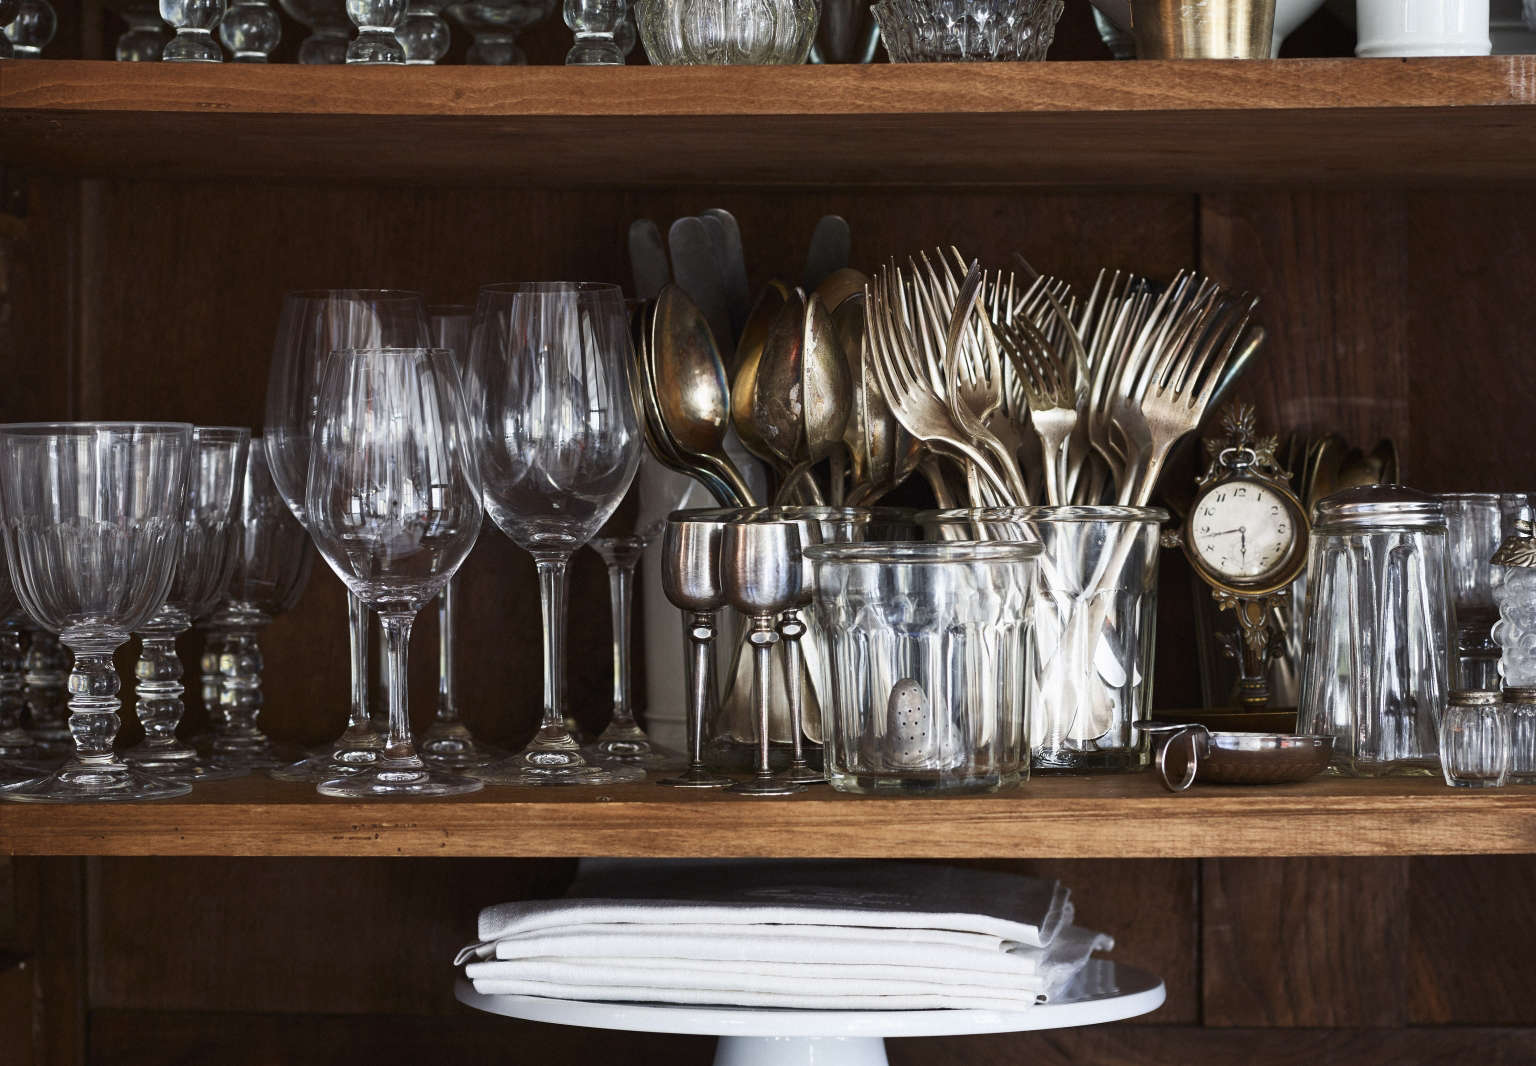 Expert Advice How To Organize The Kitchen The French Way